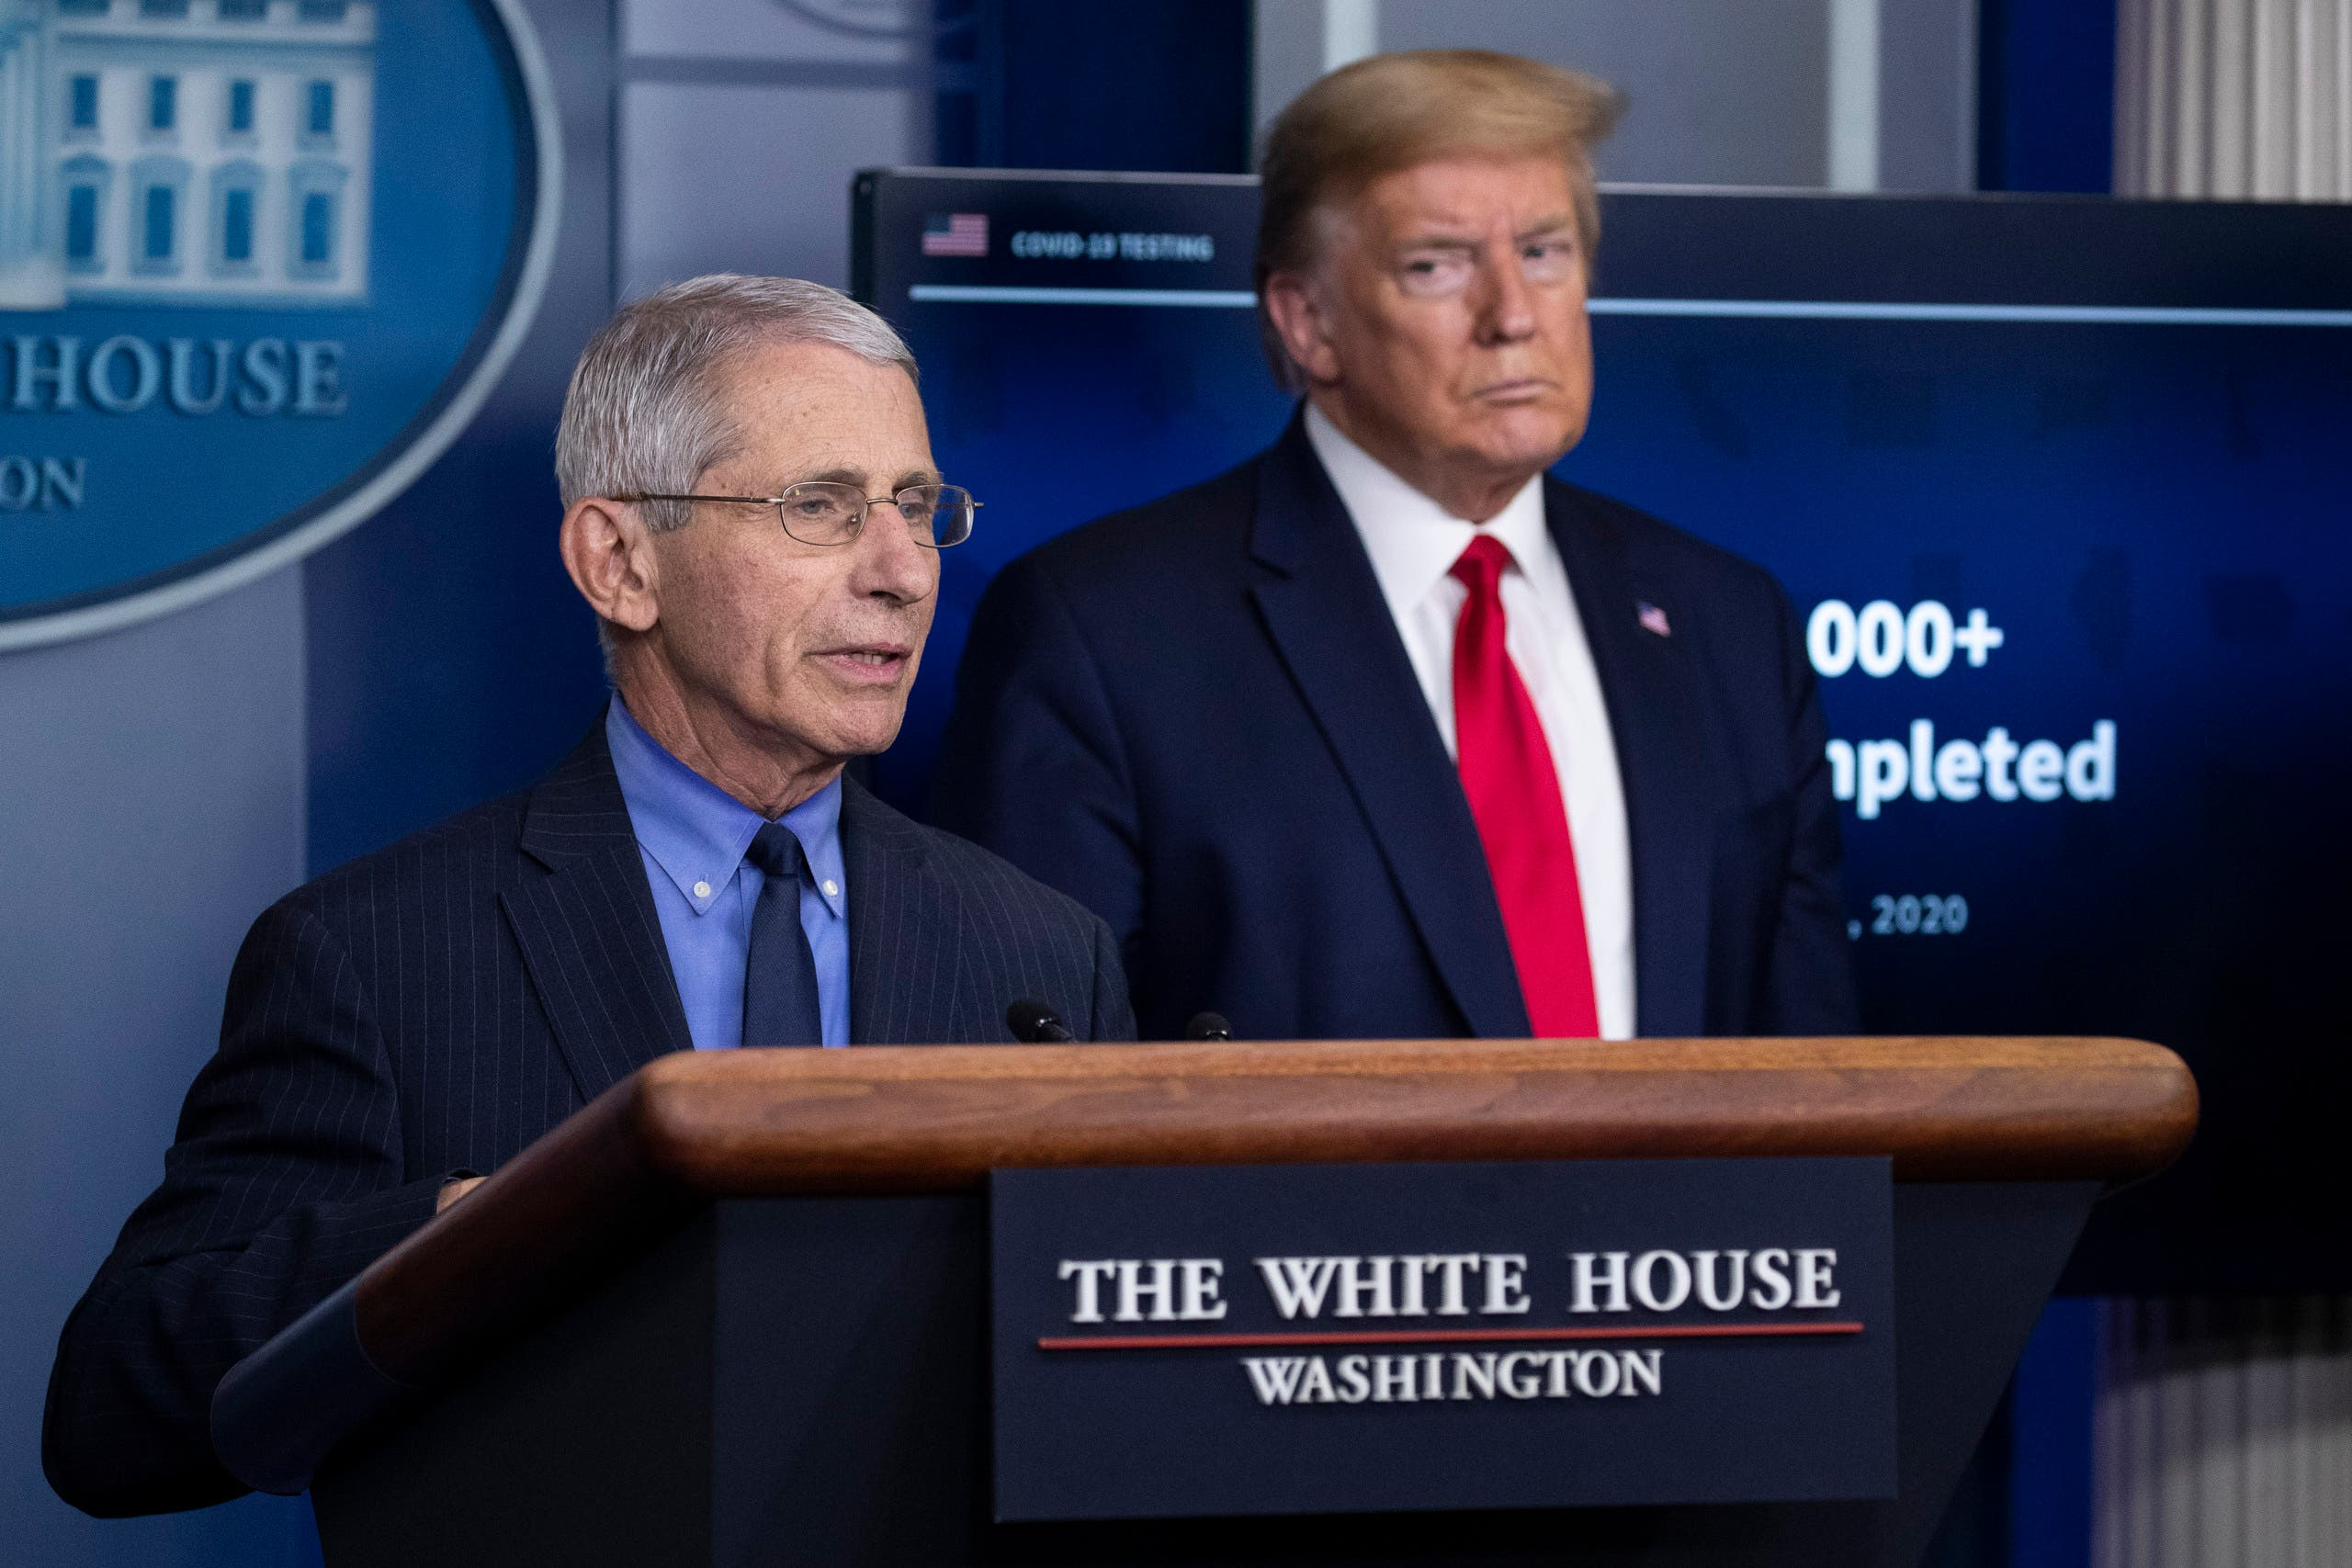 Dr. Anthony Fauci, director of the National Institute of Allergy and Infectious Diseases, about the coronavirus, as President Donald Trump listens, in the James Brady Press Briefing Room of the White House, Friday, April 17, 2020, in Washington. (AP)